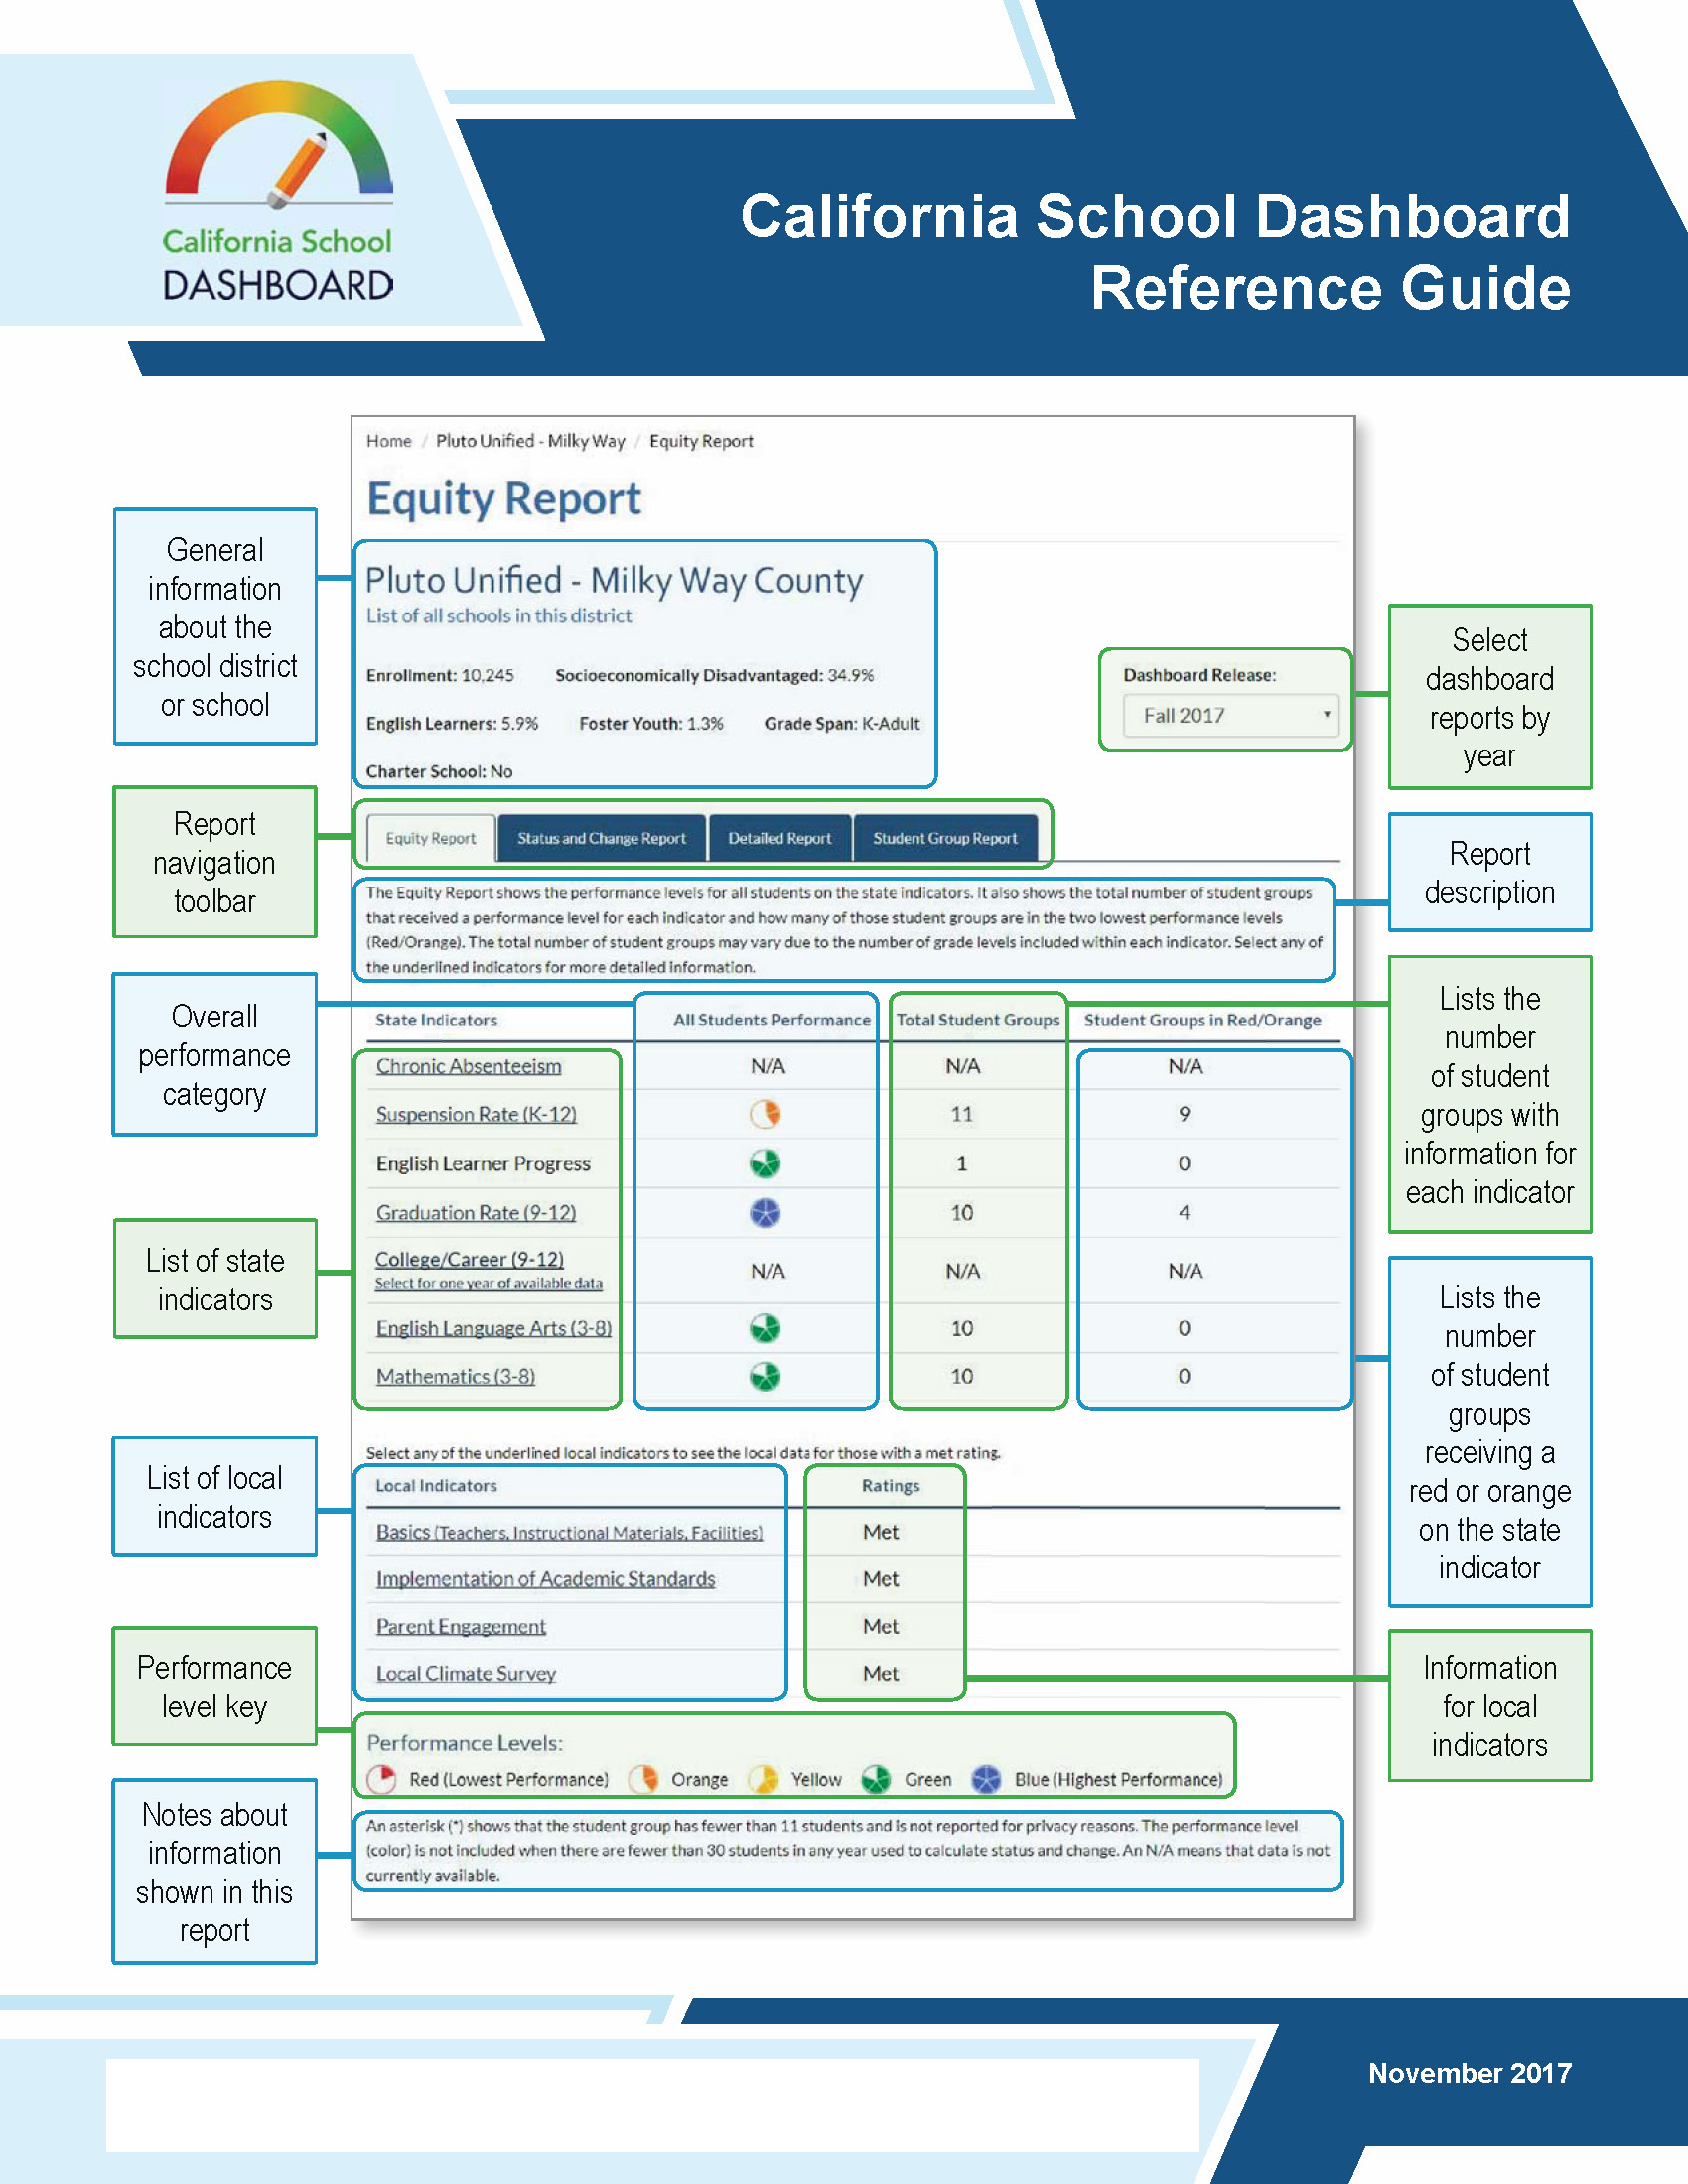 California School Dashboard Reference Guide